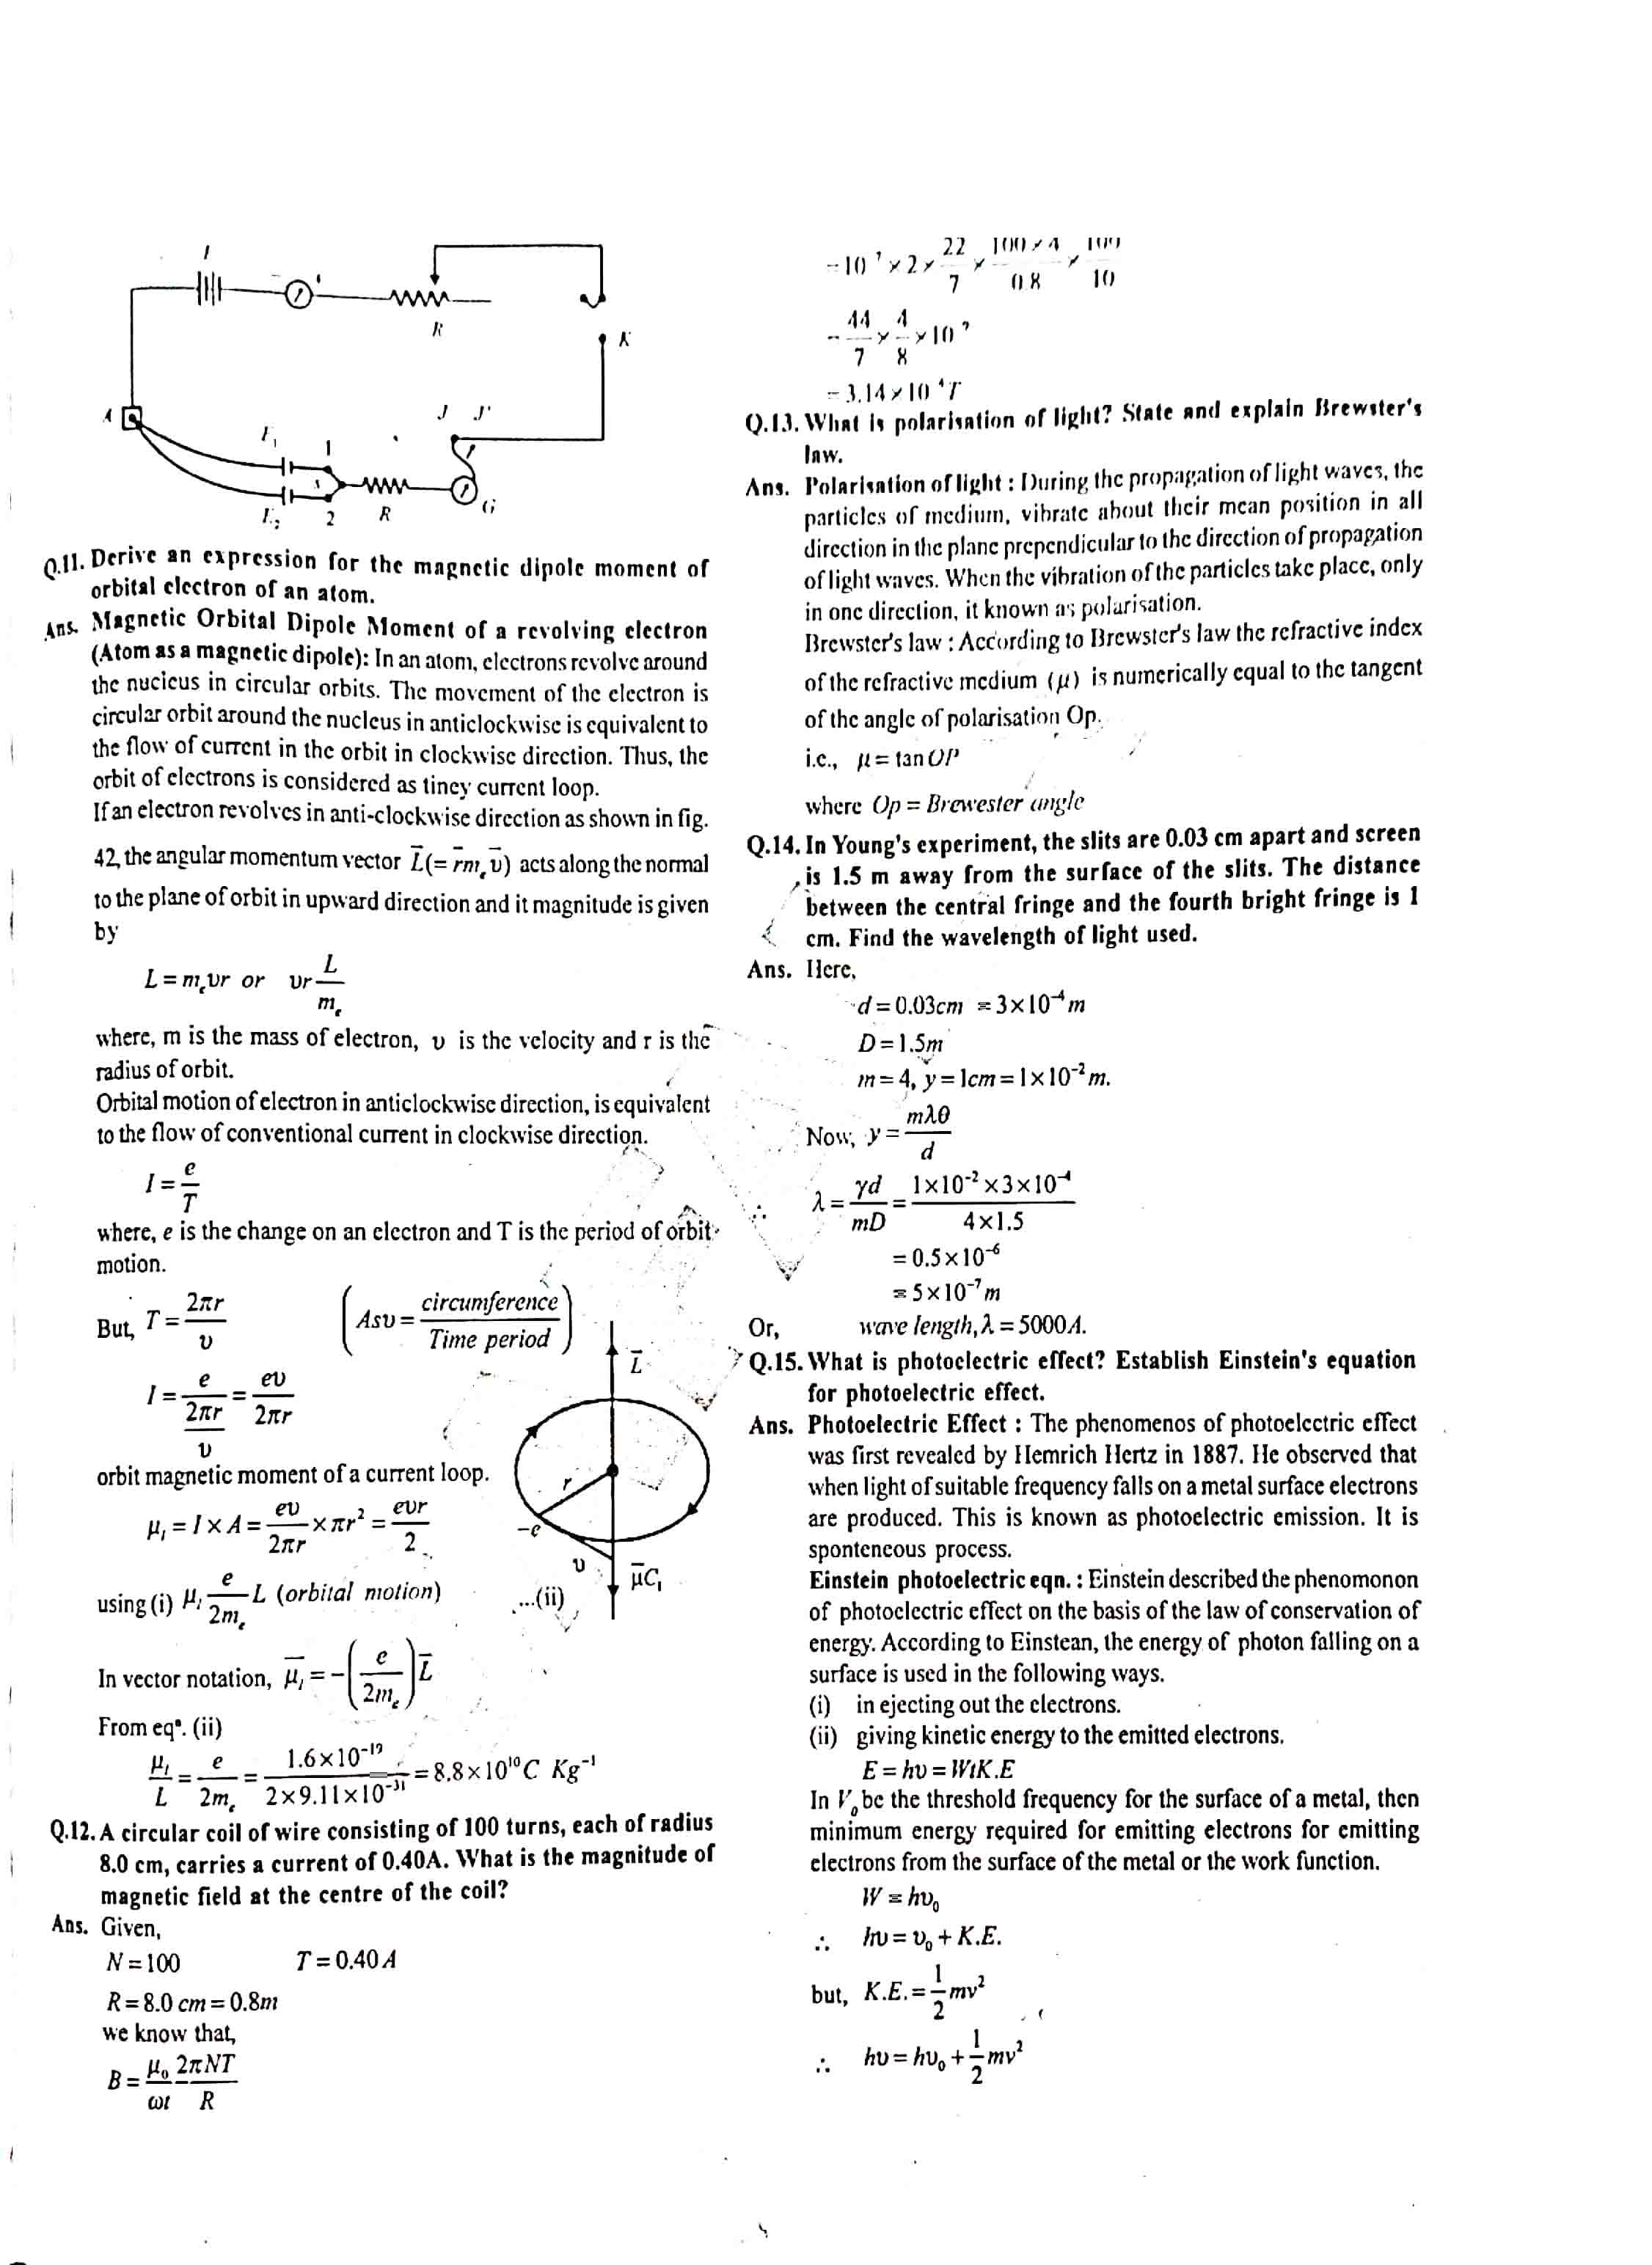 JAC Class 12 Physics 2016 Question Paper 03